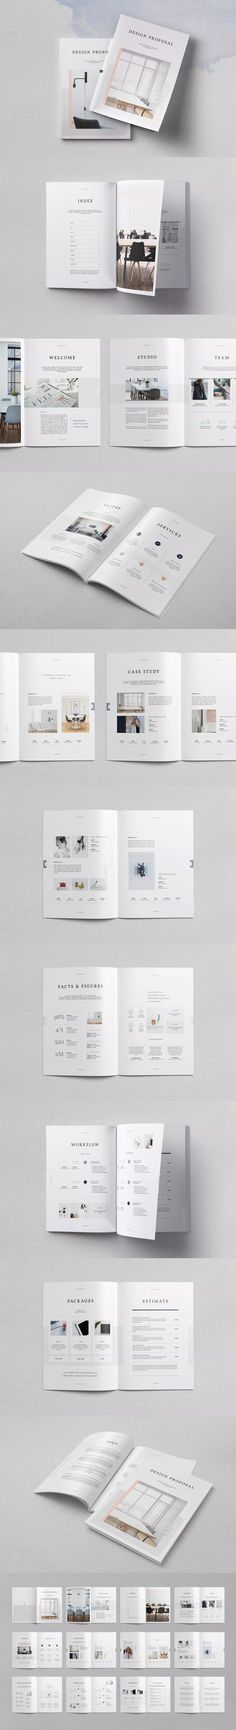 Proposal Template InDesign INDD A4 and US Letter Size Proposal - proposals templates